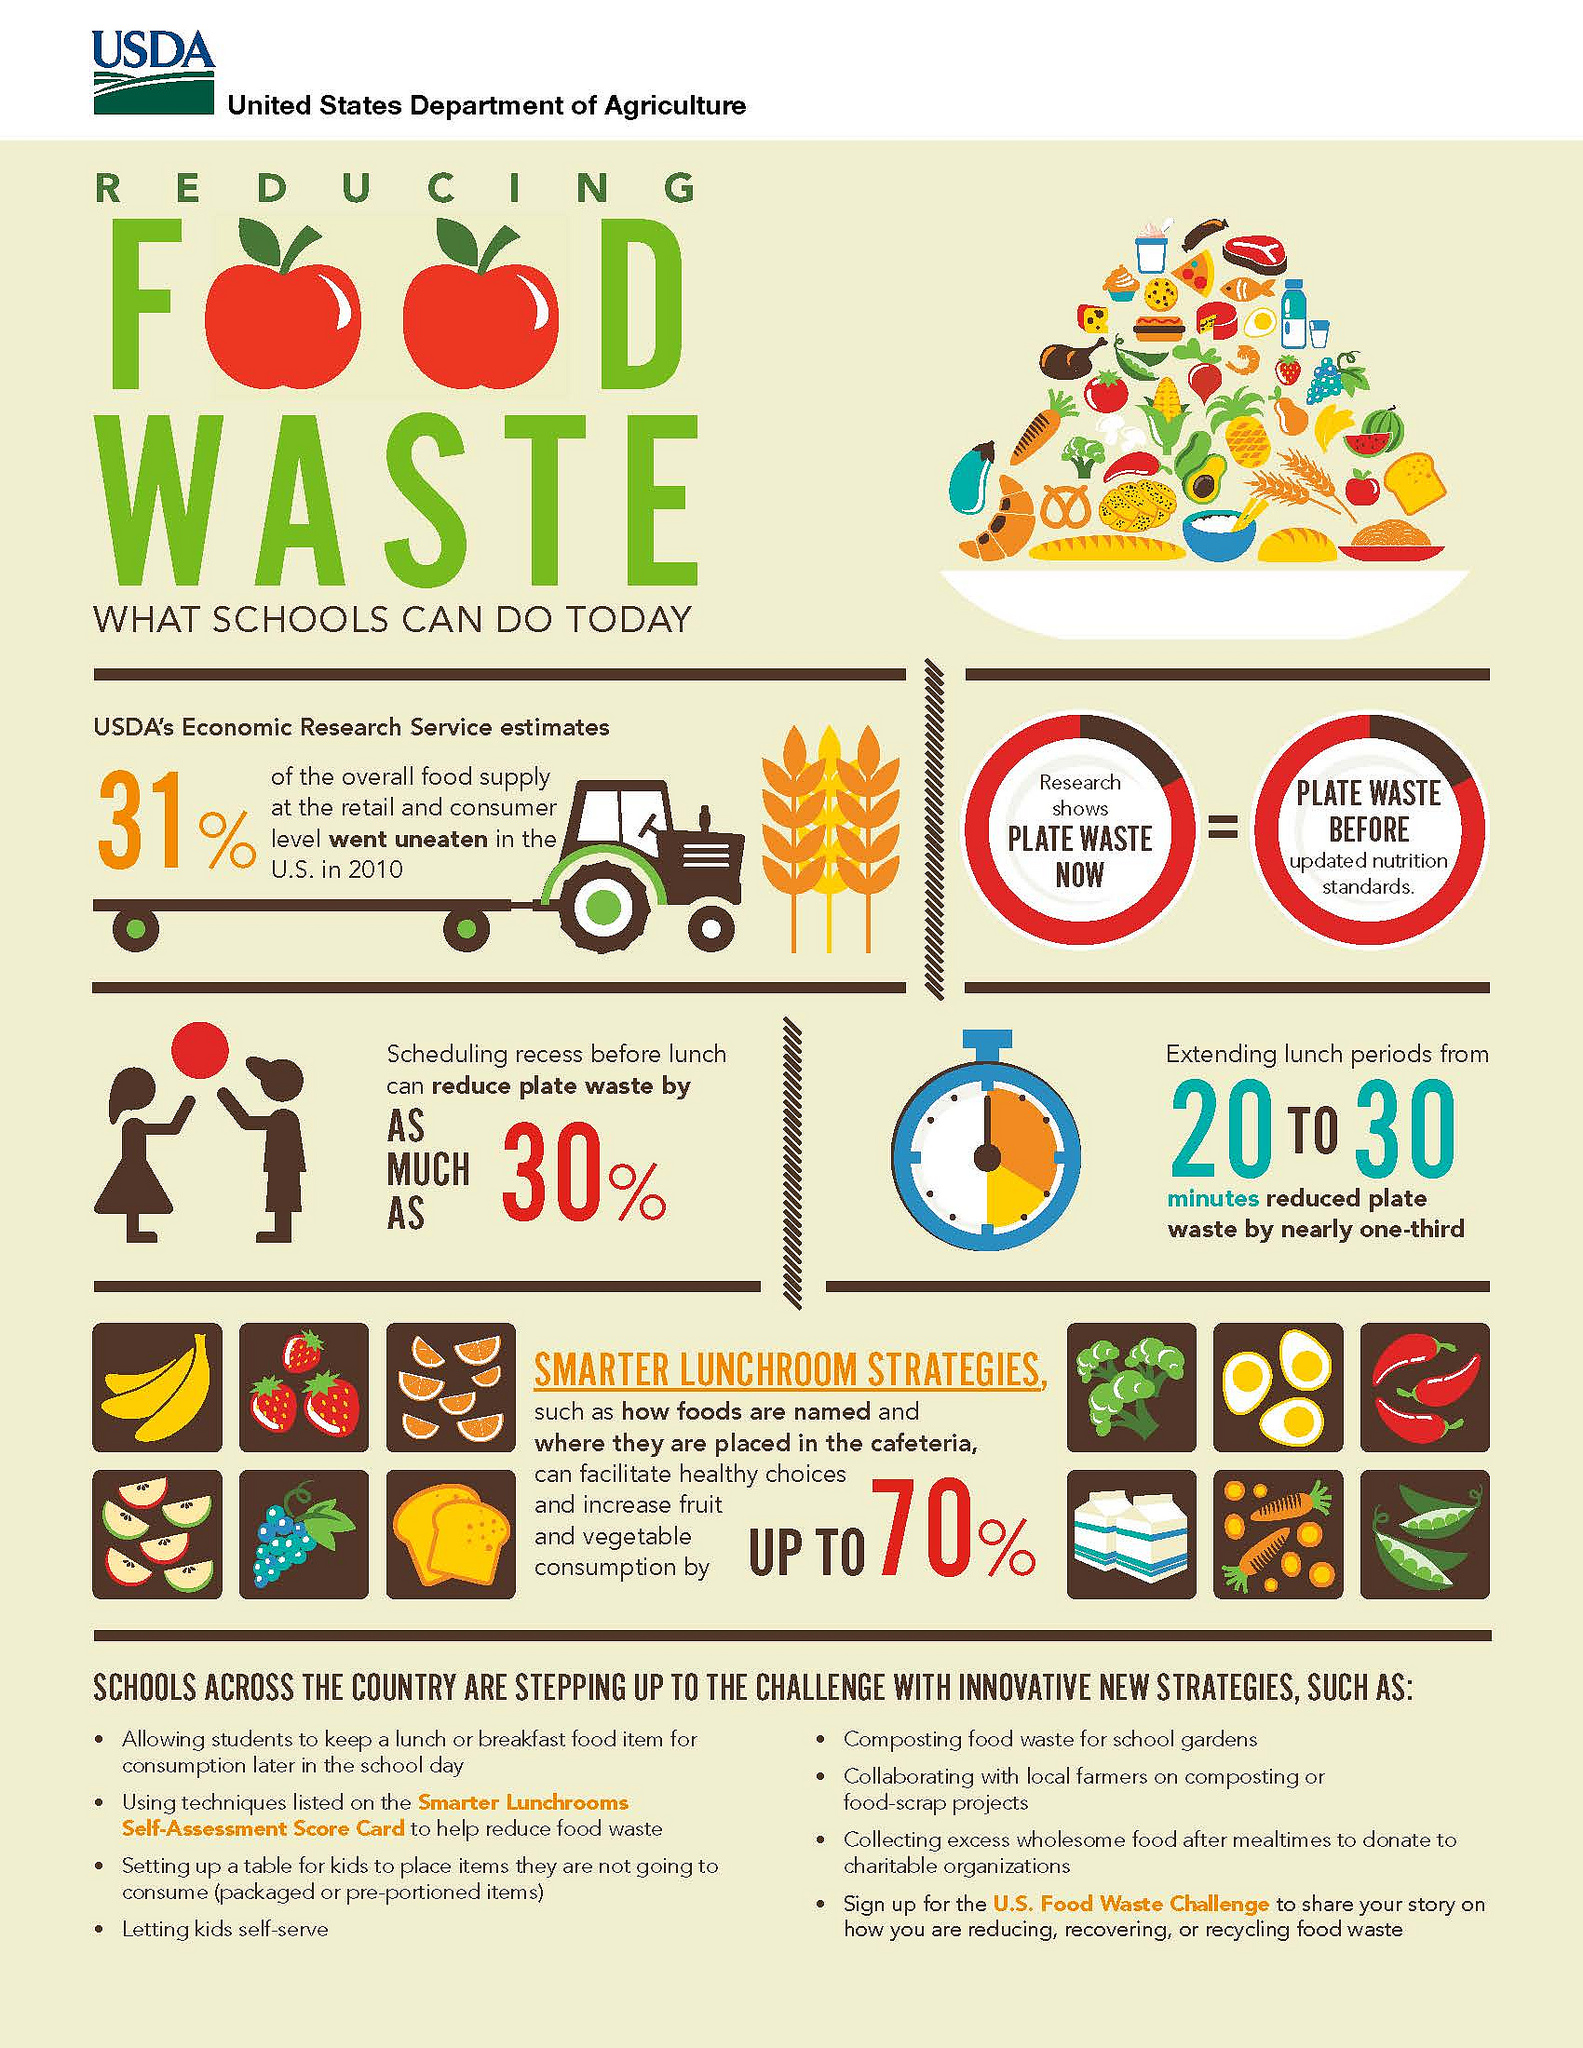 Infographic: Reducing Food Waste: What Schools Can Do Today. Image of a plate piled with clip art of food items at top. Next block: image of tractor pulling flat trailer towards wheat. USDA's Economic Research Service estimates 31% of the overall food supply at the retail and consumer level went uneaten in the U.S. in 2010. Next block: two pie charts on plates. Left: Research shows Plate Waste Now (10% of plate chart in dark brown, rest in red) = Plate waste before updated nutrition standards (also 10% dark on pie chart compared to rest in bright red). Next block: two children playing with a red ball. Scheduling recess before lunch can reduce plate waste by as much as 30%. Next block: stop watch with 20 seconds marked in bright orange, next 10 seconds in yellow, rest in white. Extending lunch periods from 20 to 30 minutes reduced plate waste by nearly one-third. Next block: Brown squares with drawings of food items surround text in middle. Smarter lunchroom strategies, such as how foods are named and where they are placed in the cafeteria, can facilitate healthy choices and increase fruit and vegetable consumption by up to 70%. Last block: Schools across the country are stepping up to the challenge with innovative new strategies, such as: Allowing students to keep a lunch or breakfast food item for consumption later in the school day. Using techniques listed on the Smarter Lunchrooms Self-Assessment Score Card to help reduce food waste. Setting up a table for kids to place items they are not going to consume (packaged or pre-portioned items). Letting kids self-serve. Composting food waste for school gardens. Collaborating with local farmers on composting or food-scrap projects. Collecting excess wholesome food after mealtimes to donate to charitable organizations. Sign up for the U.S. Food Waste Challenge to share your story on how you are reducing, recovering, or recycling food waste.